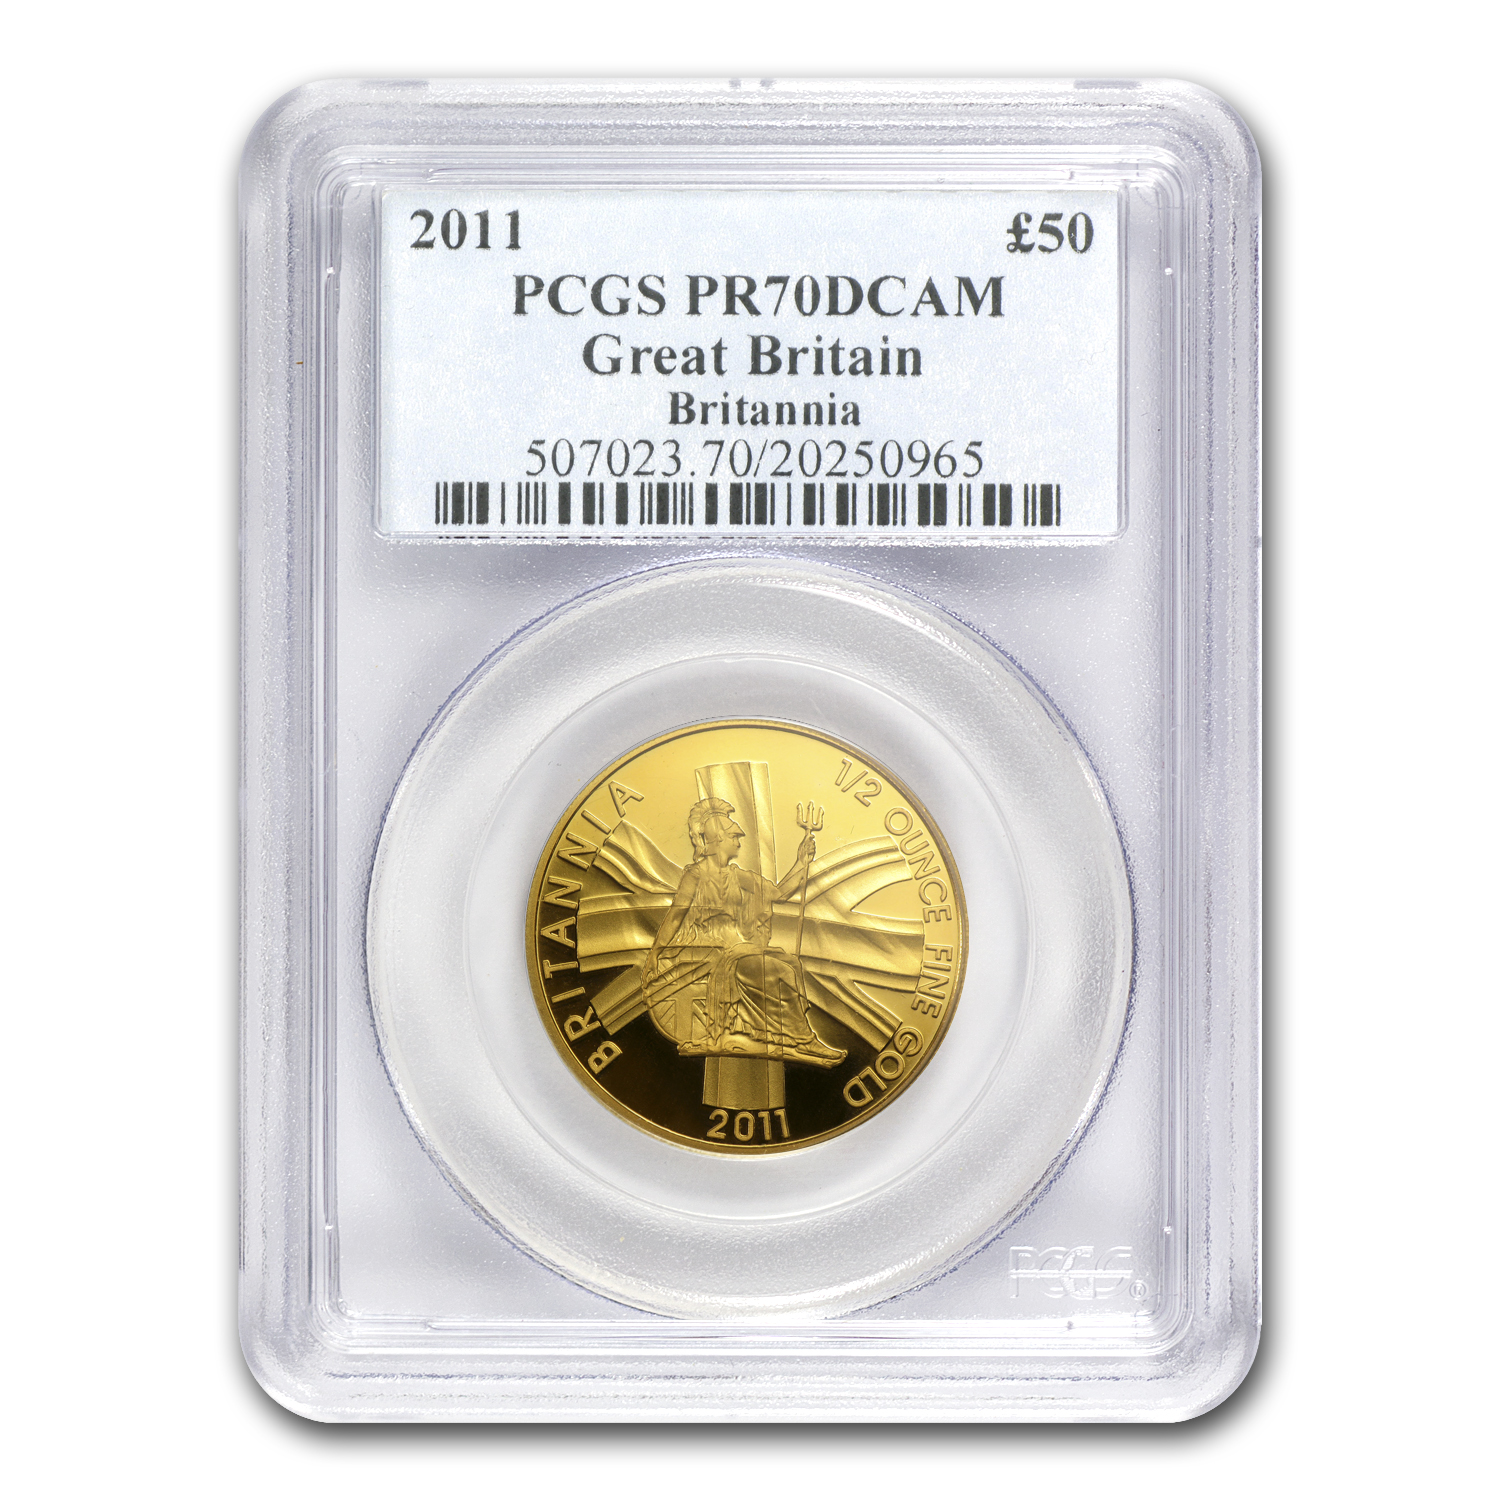 2011 Great Britain 1/2 oz Proof Gold Britannia PR-70 PCGS